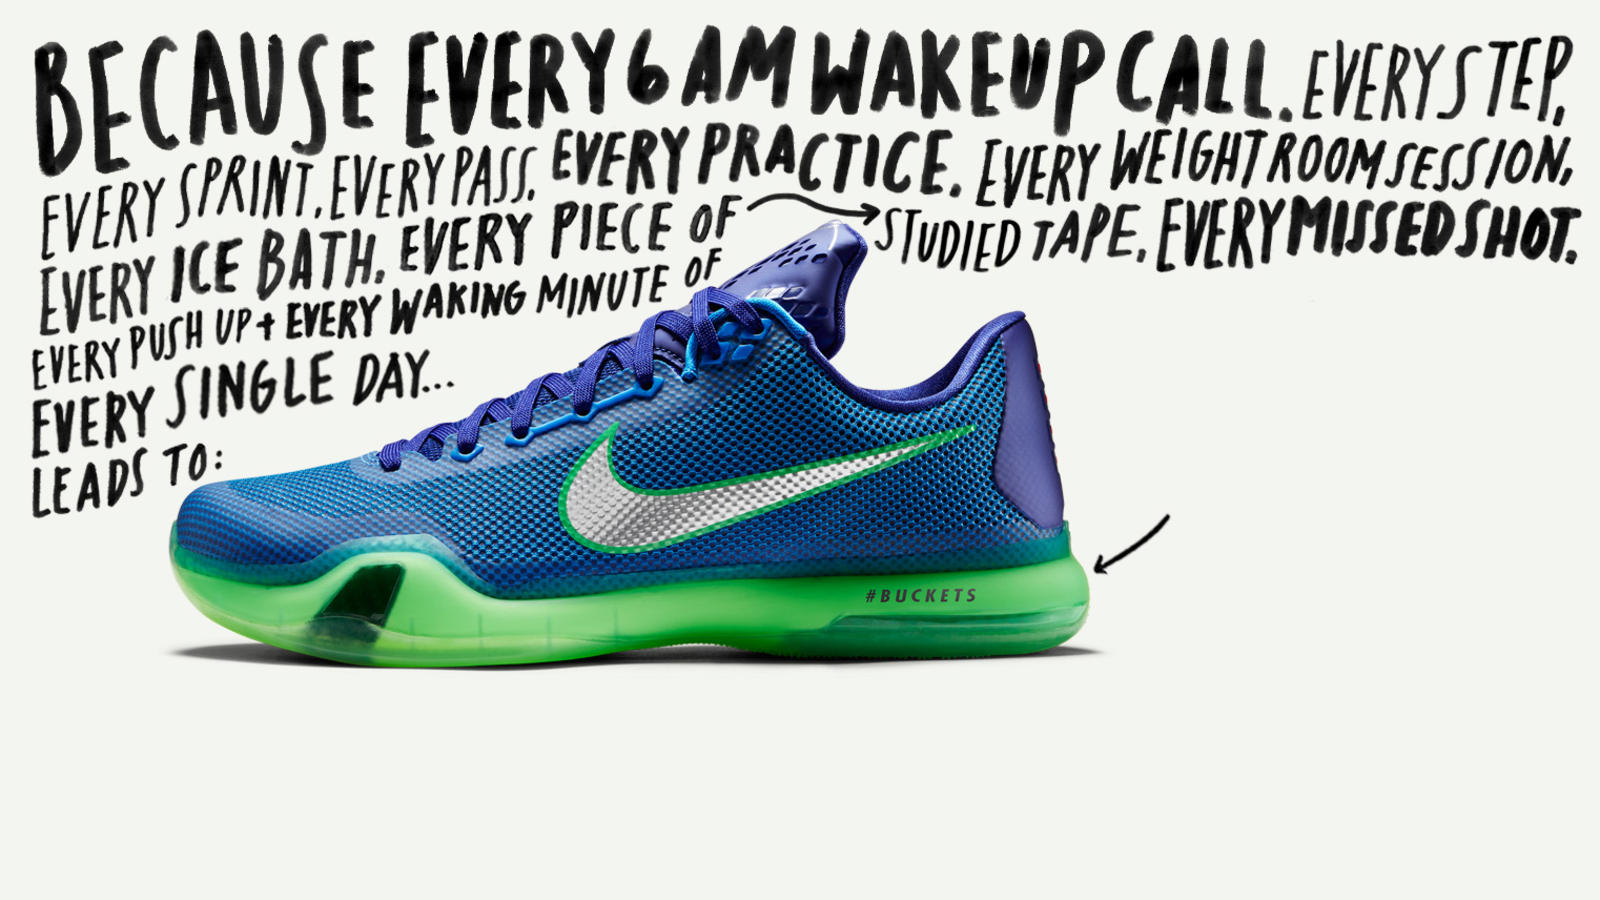 Customized Text On Nike Shoe Characters